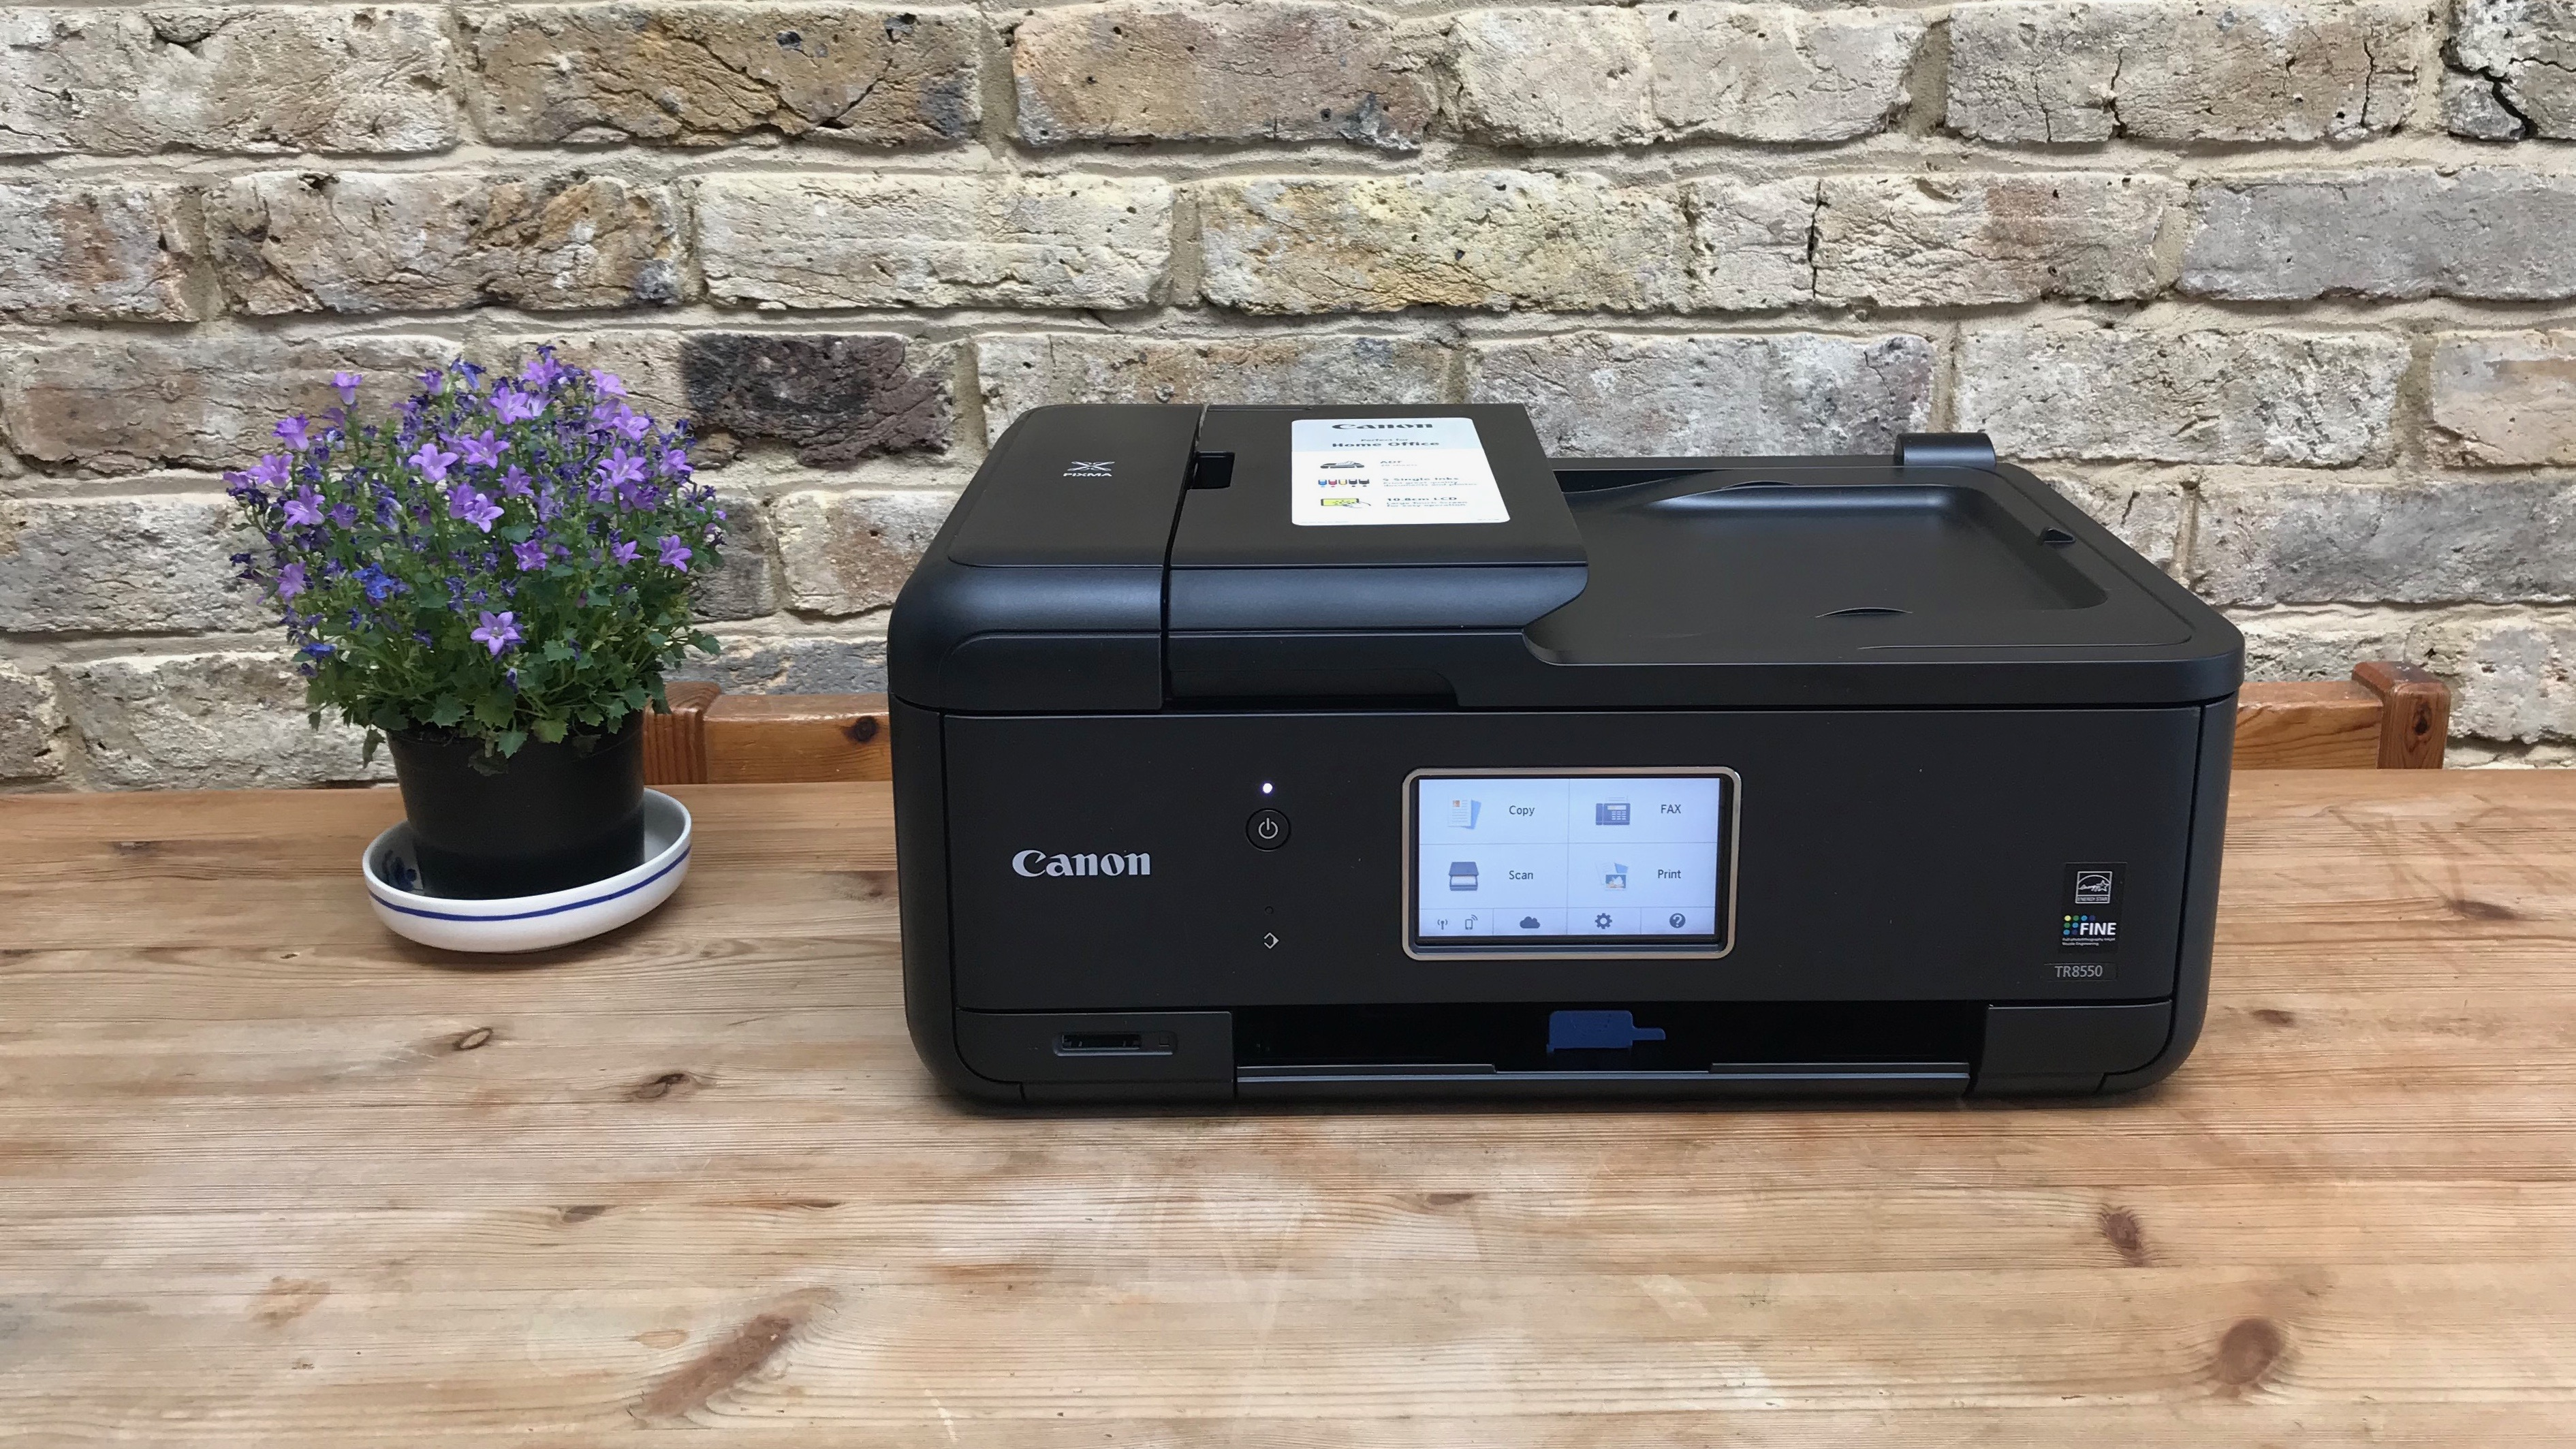 Best Home Printers 2020.Best Wireless Printers Of 2020 Top Picks For Printing From